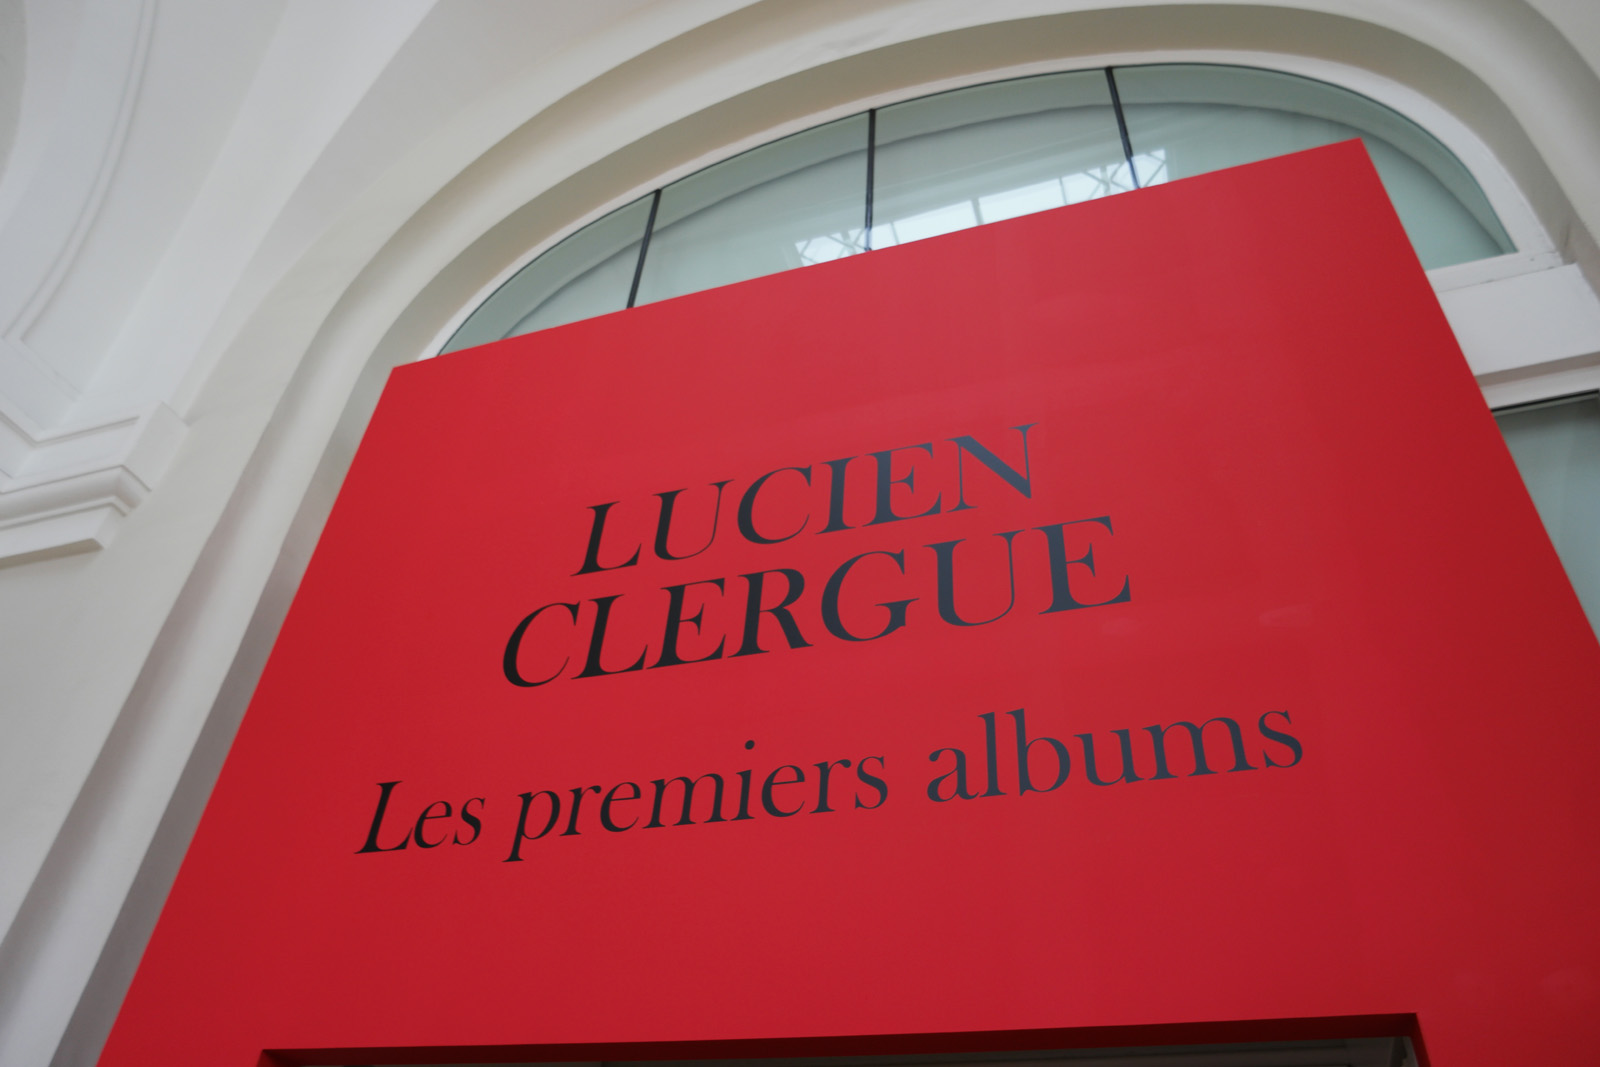 Entrée exposition photo Lucien Clergue Les premiers albums Grand Palais galeries nationales poret H photo united states of paris blog